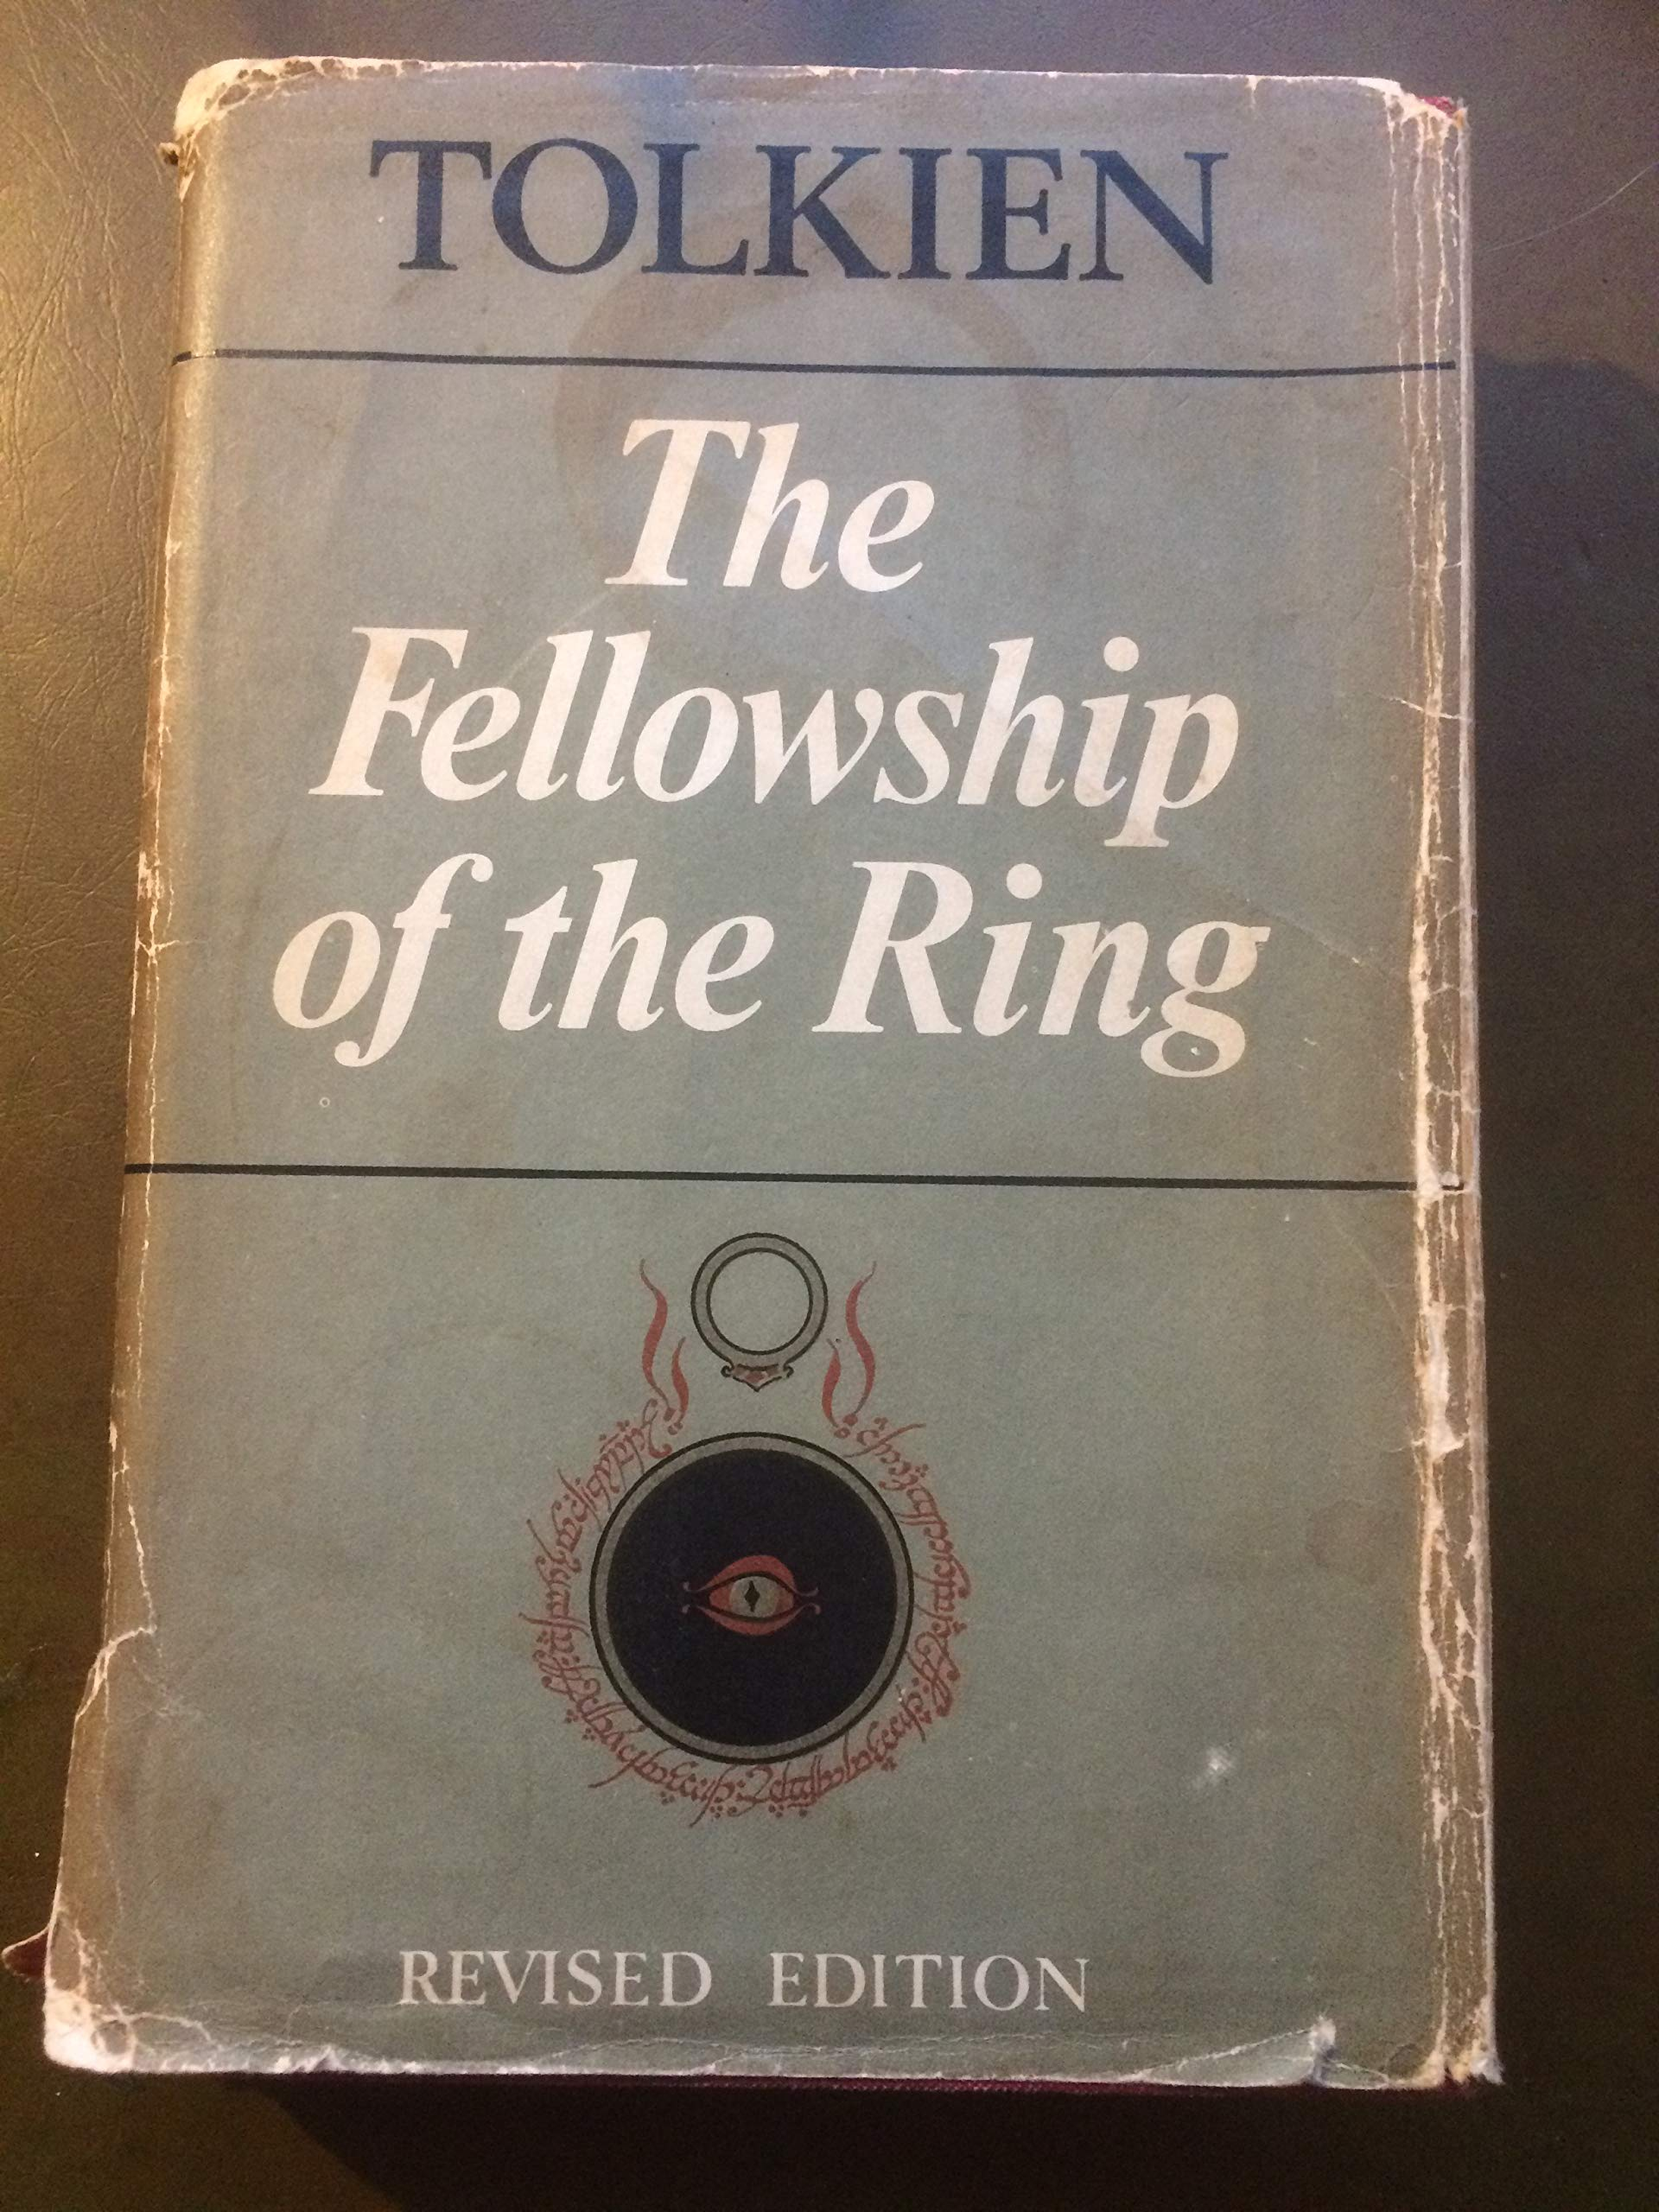 The fellowship of the ring: Amazon.es: J. R. R. Tolkien: Libros